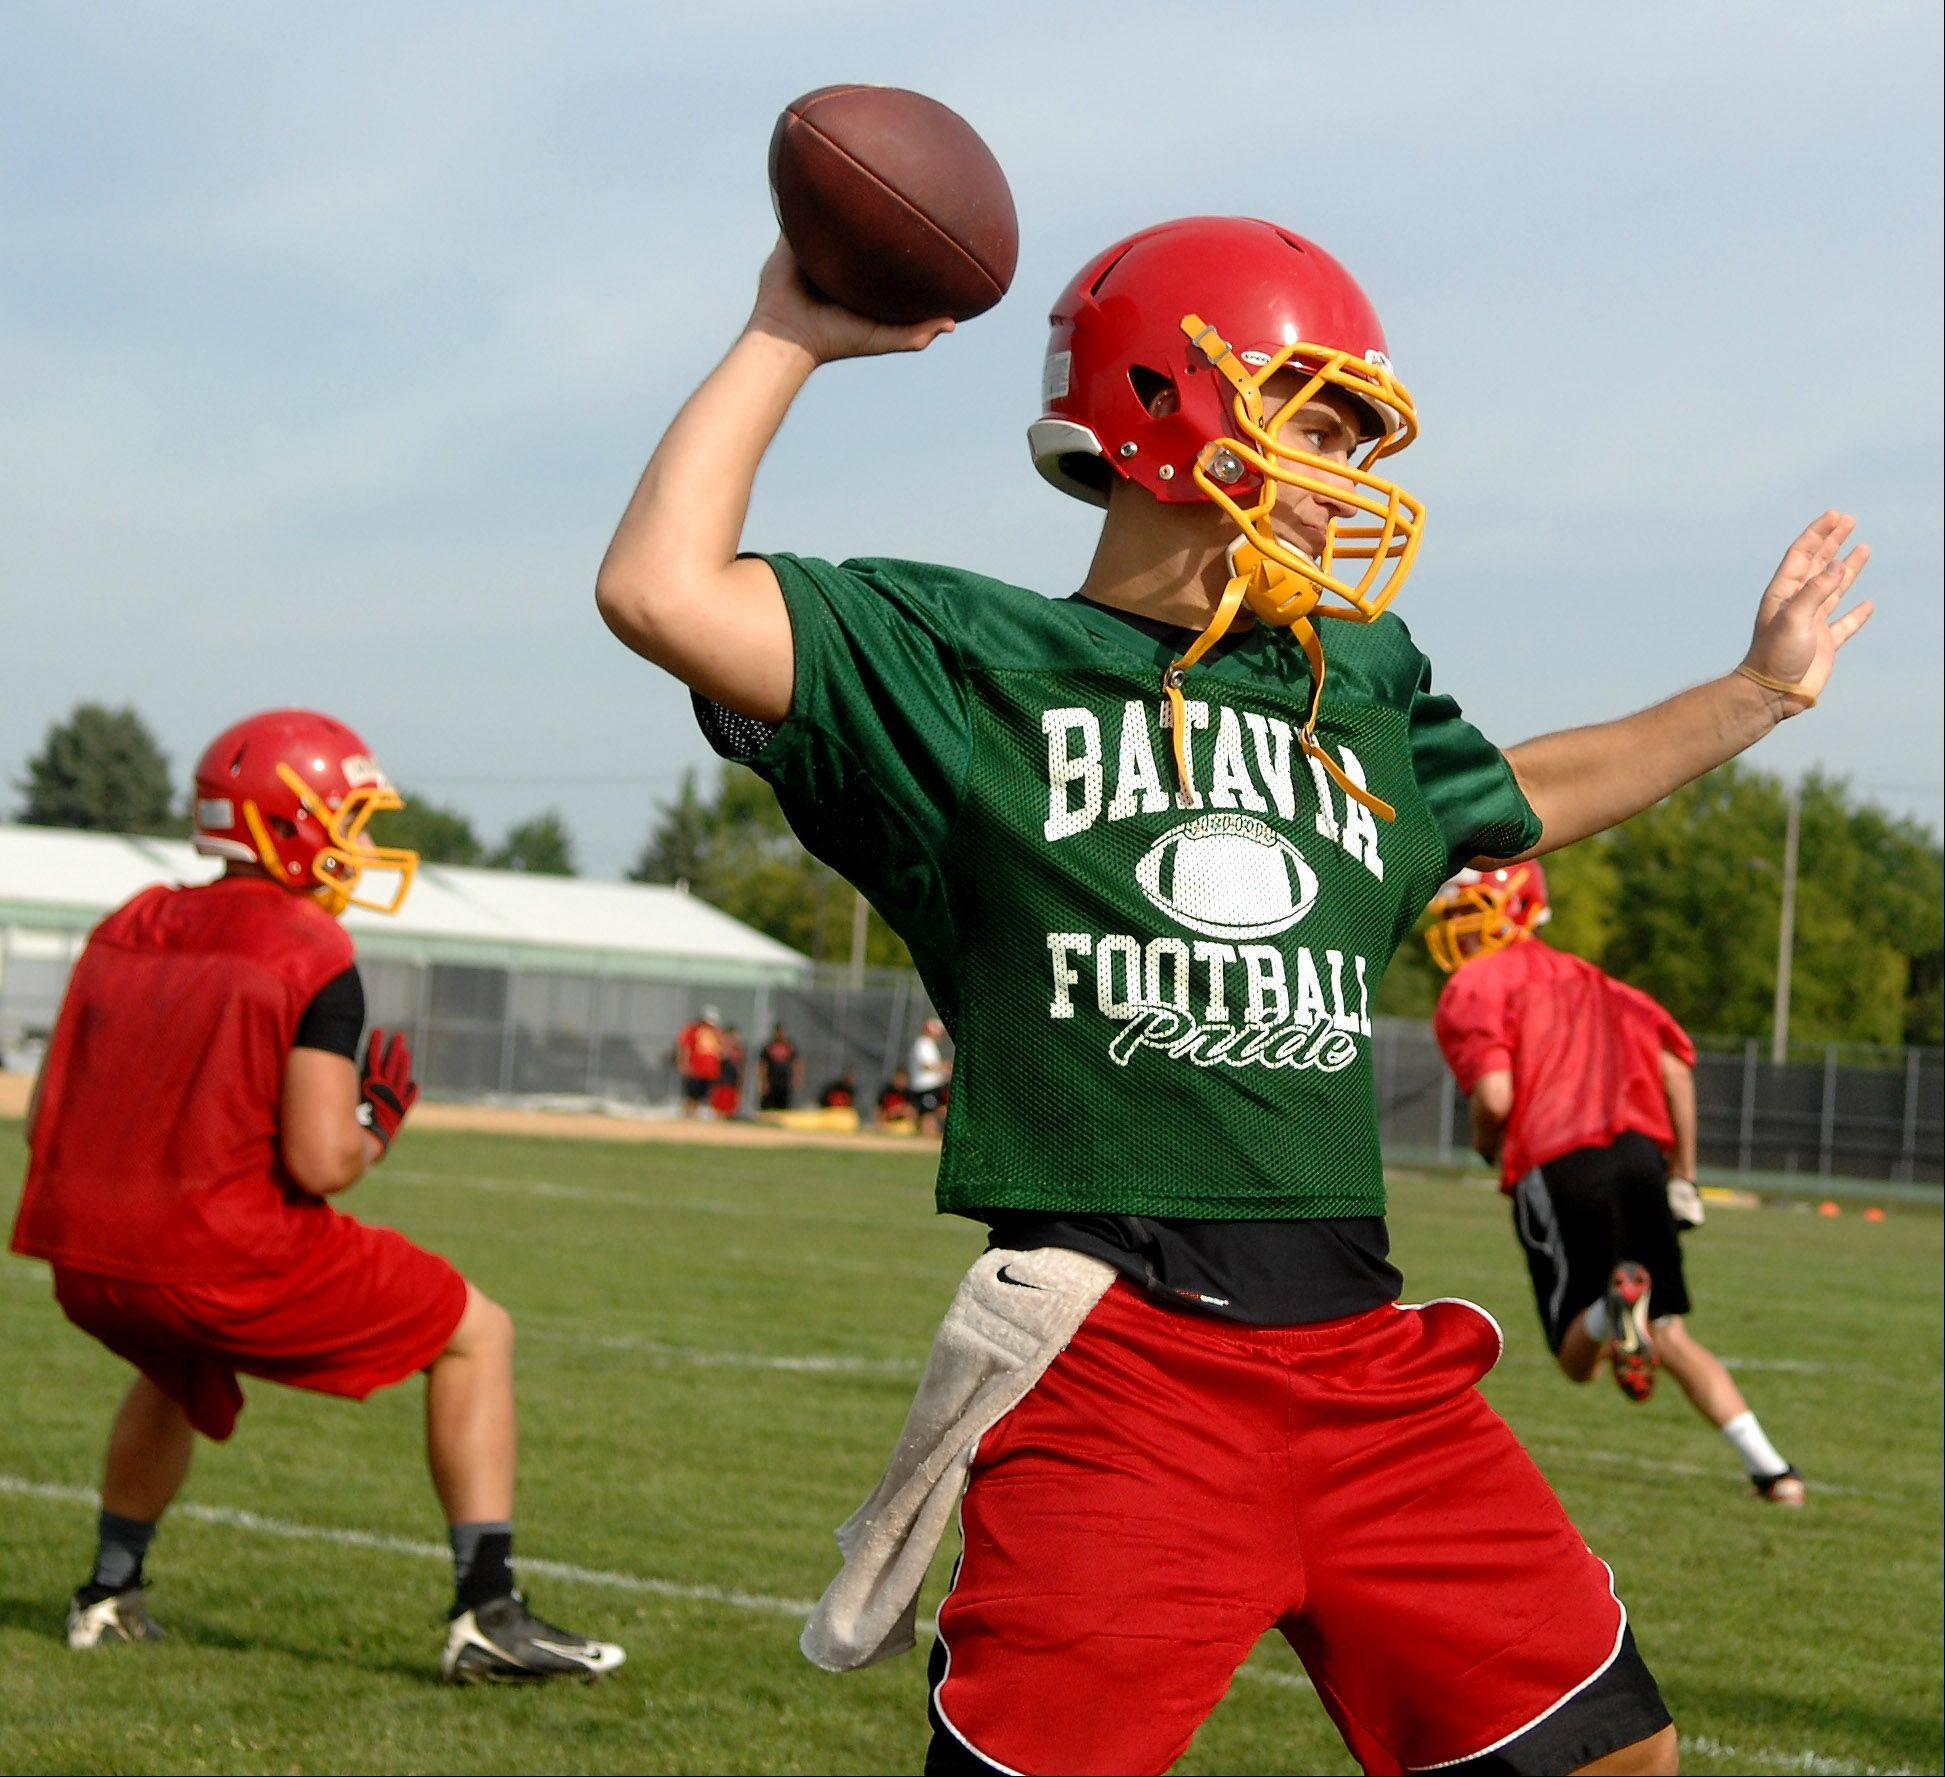 Quarterback Daniel Albrecht rears back to pass during Batavia's first day of football practice Wednesday.